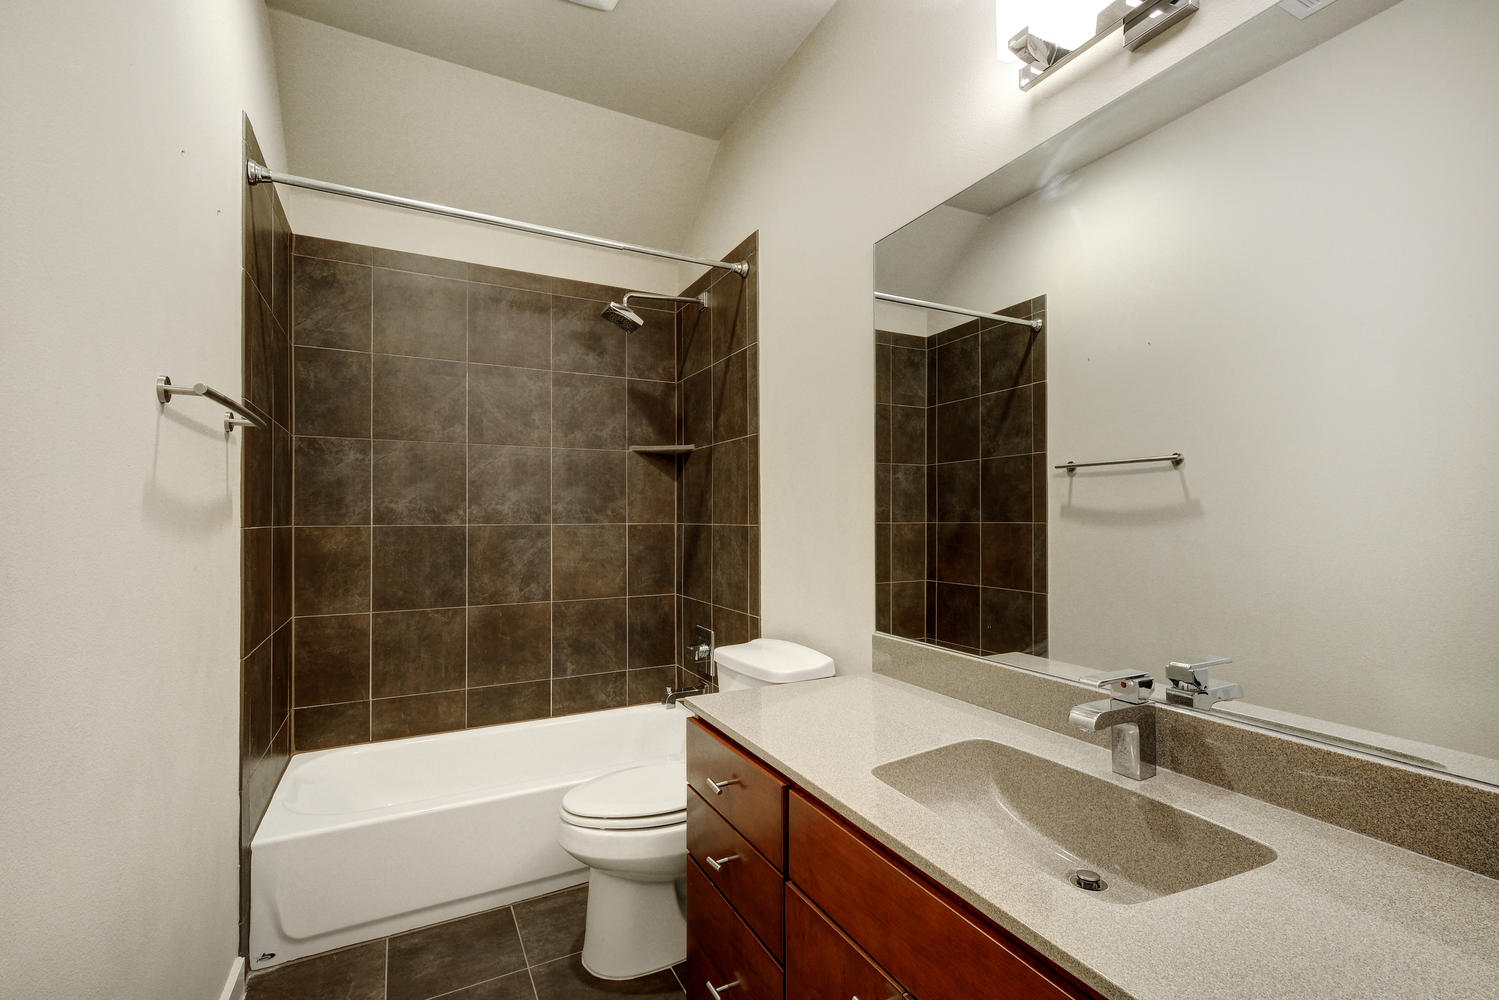 2909 Corbin Ln-large-026-13-Other Beds and Baths 003-1499x1000-72dpi.jpg